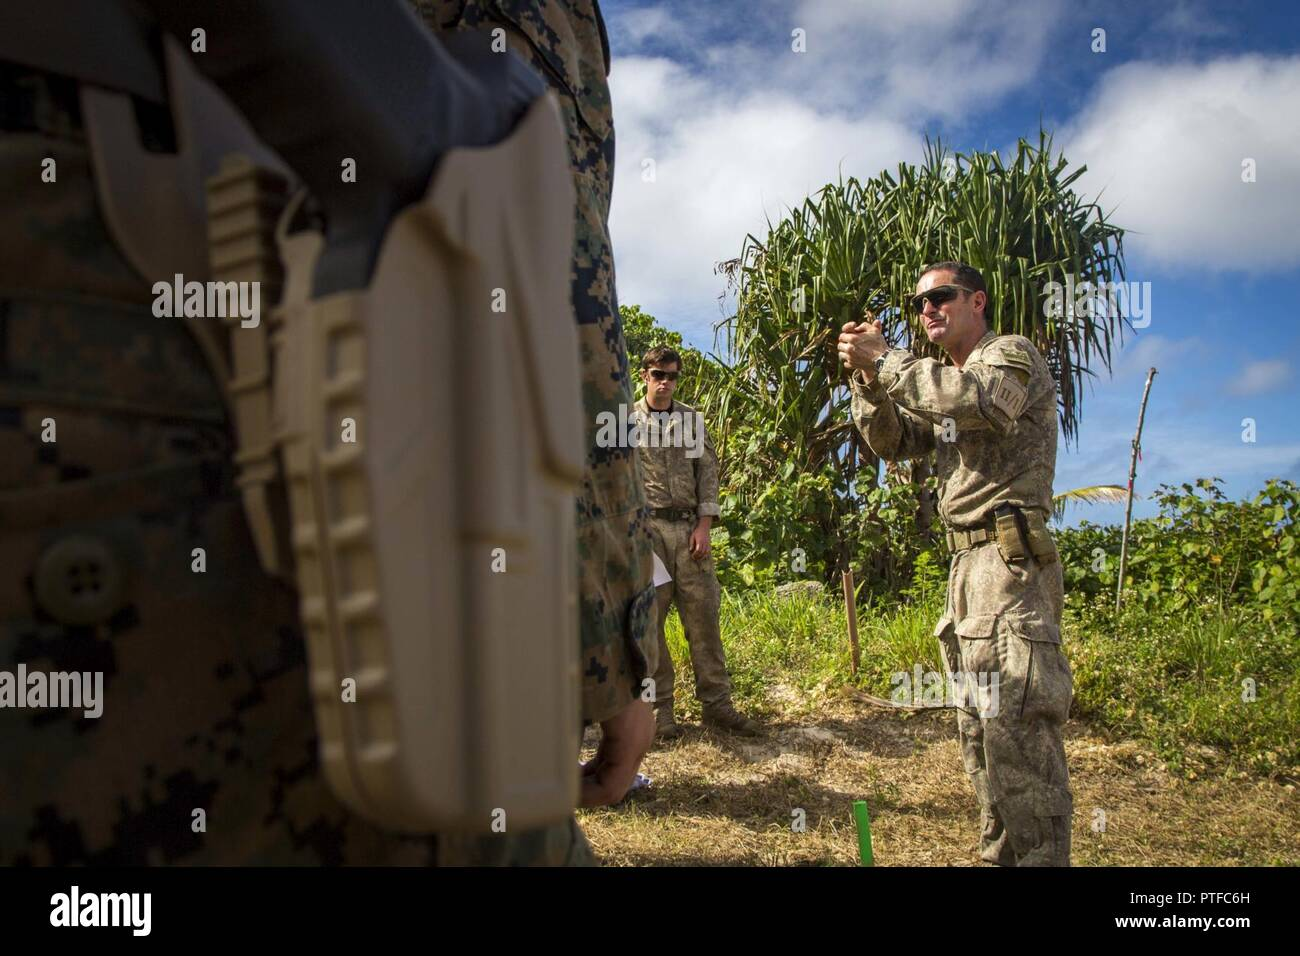 New Zealand Army Sgt. Maj. Paul Buckley, company sergeant major for delta company, shows U.S. Marines with 3rd Battalion 4th Marines attached to Task Force Koa Moana 17, how to properly hold the glock 17 during Exercise TAFAKULA, on Tongatapu Island, Tonga, July 21, 2017. Exercise TAFAKULA is designed to strengthen the military-to-military, and community relations between Tonga's His Majesty's Armed Forces, French Army of New Caledonia, New Zealand Defense Force, and the United States Armed Forces. Stock Photo